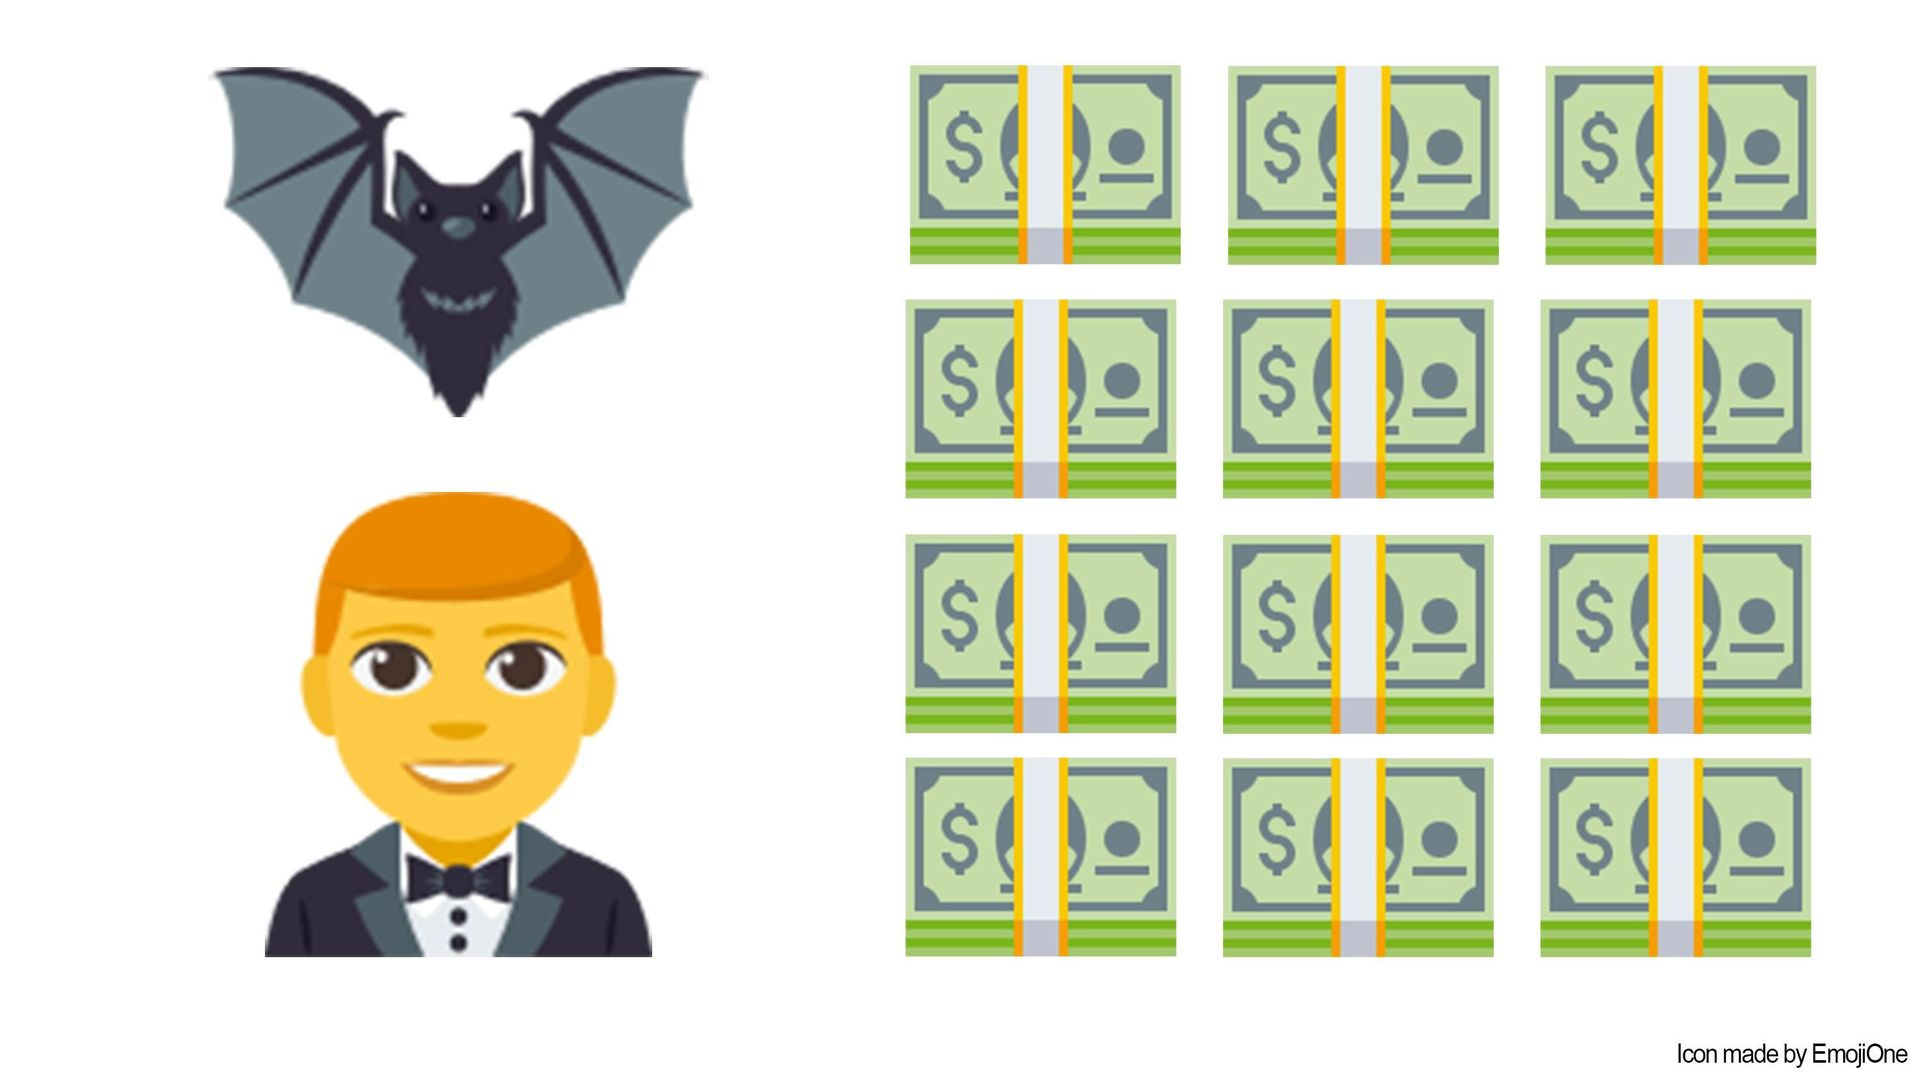 Howstuffworks: Guess the '80s movie from an emoji sequence!